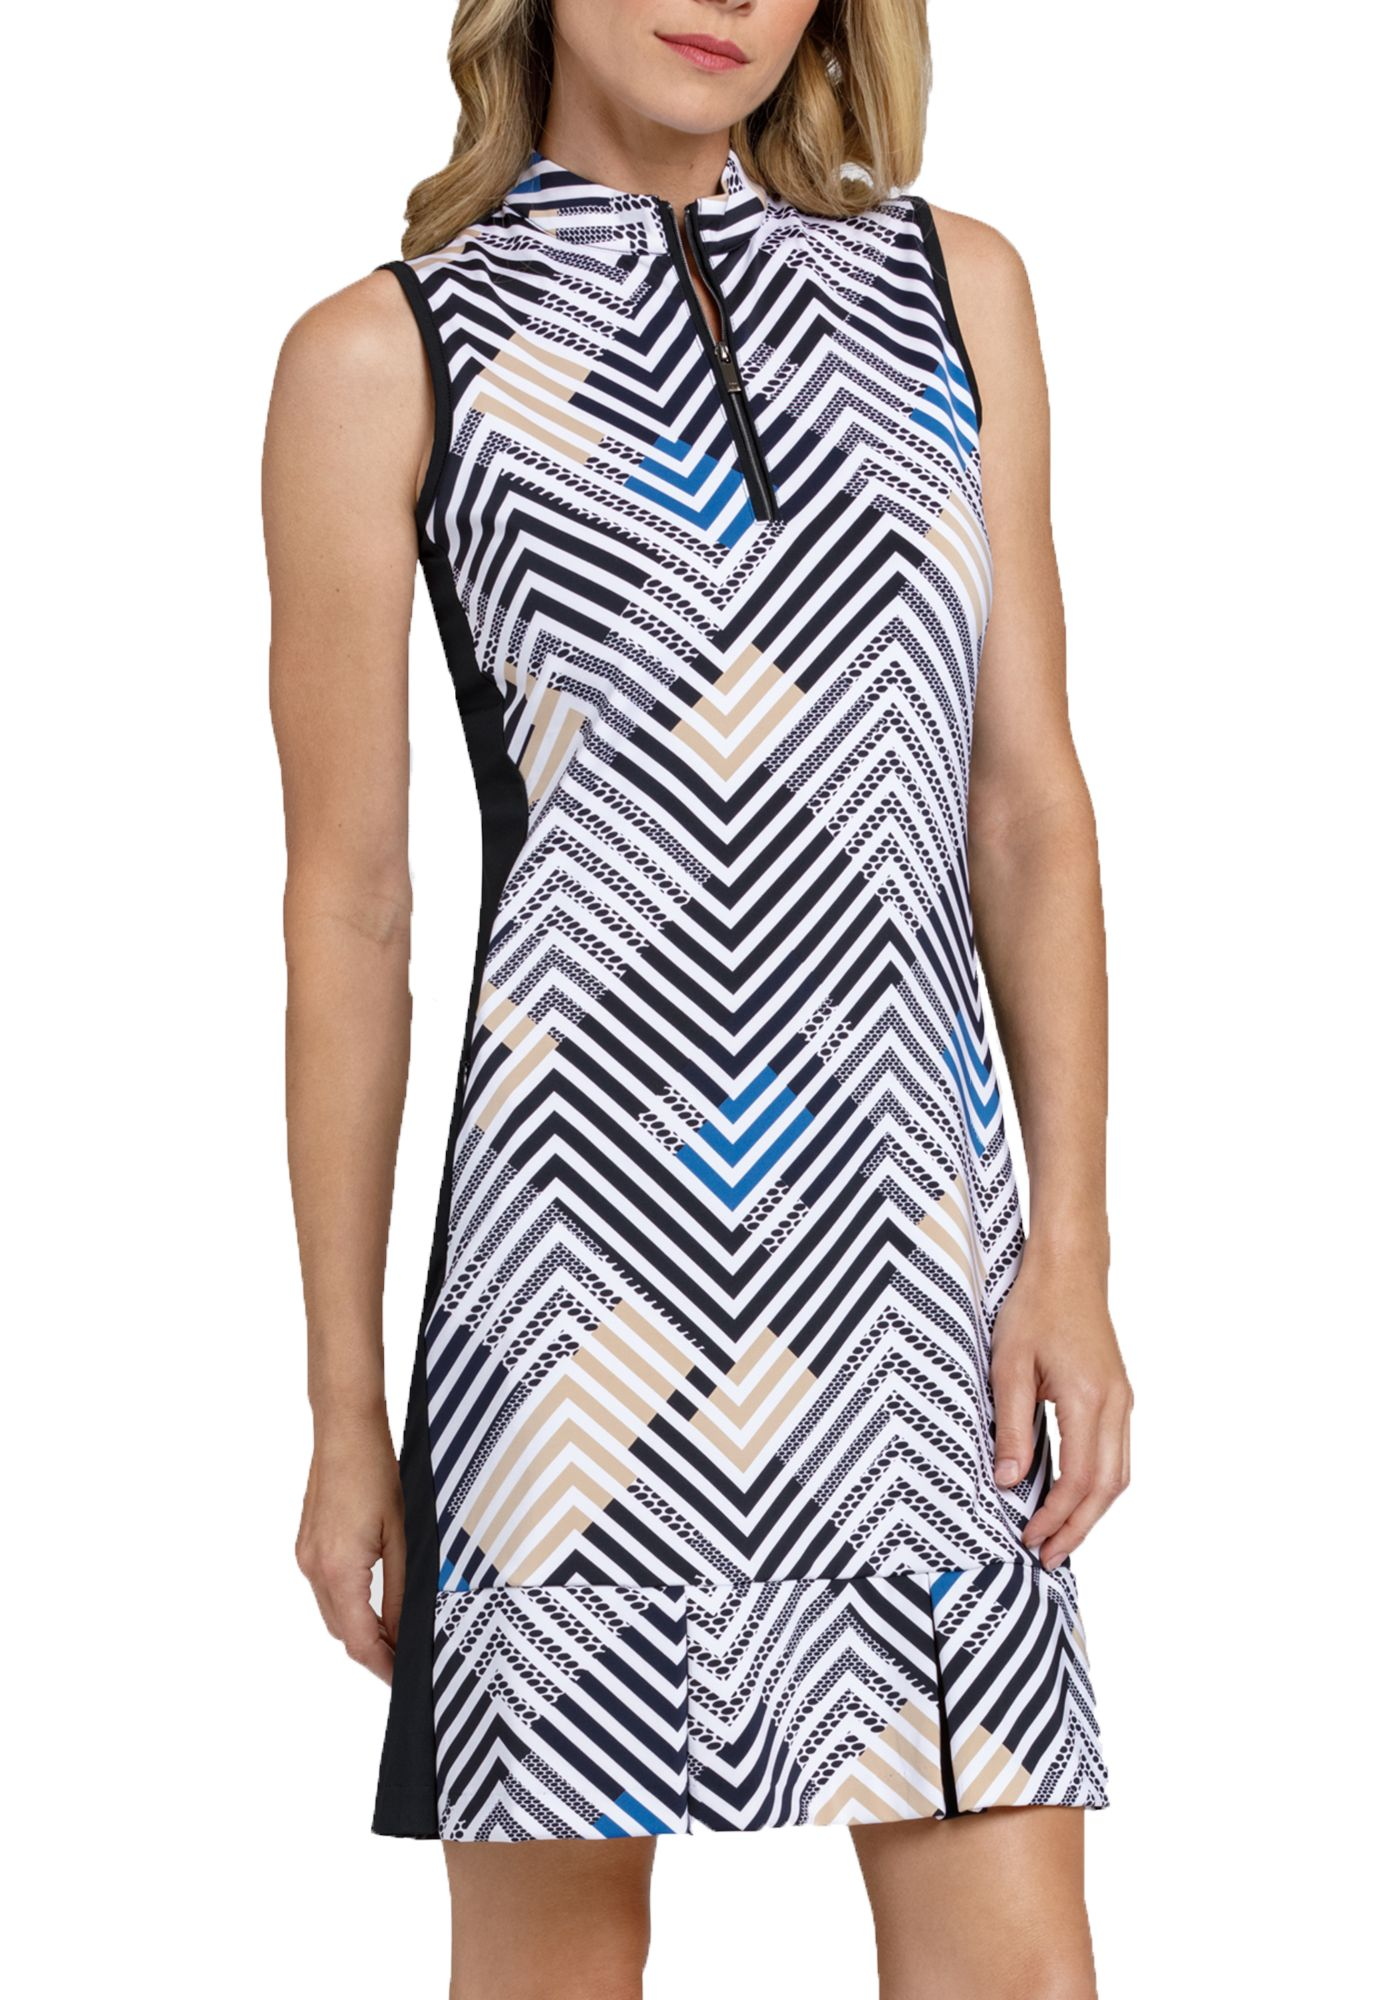 Tail Women's Lila Golf Dress